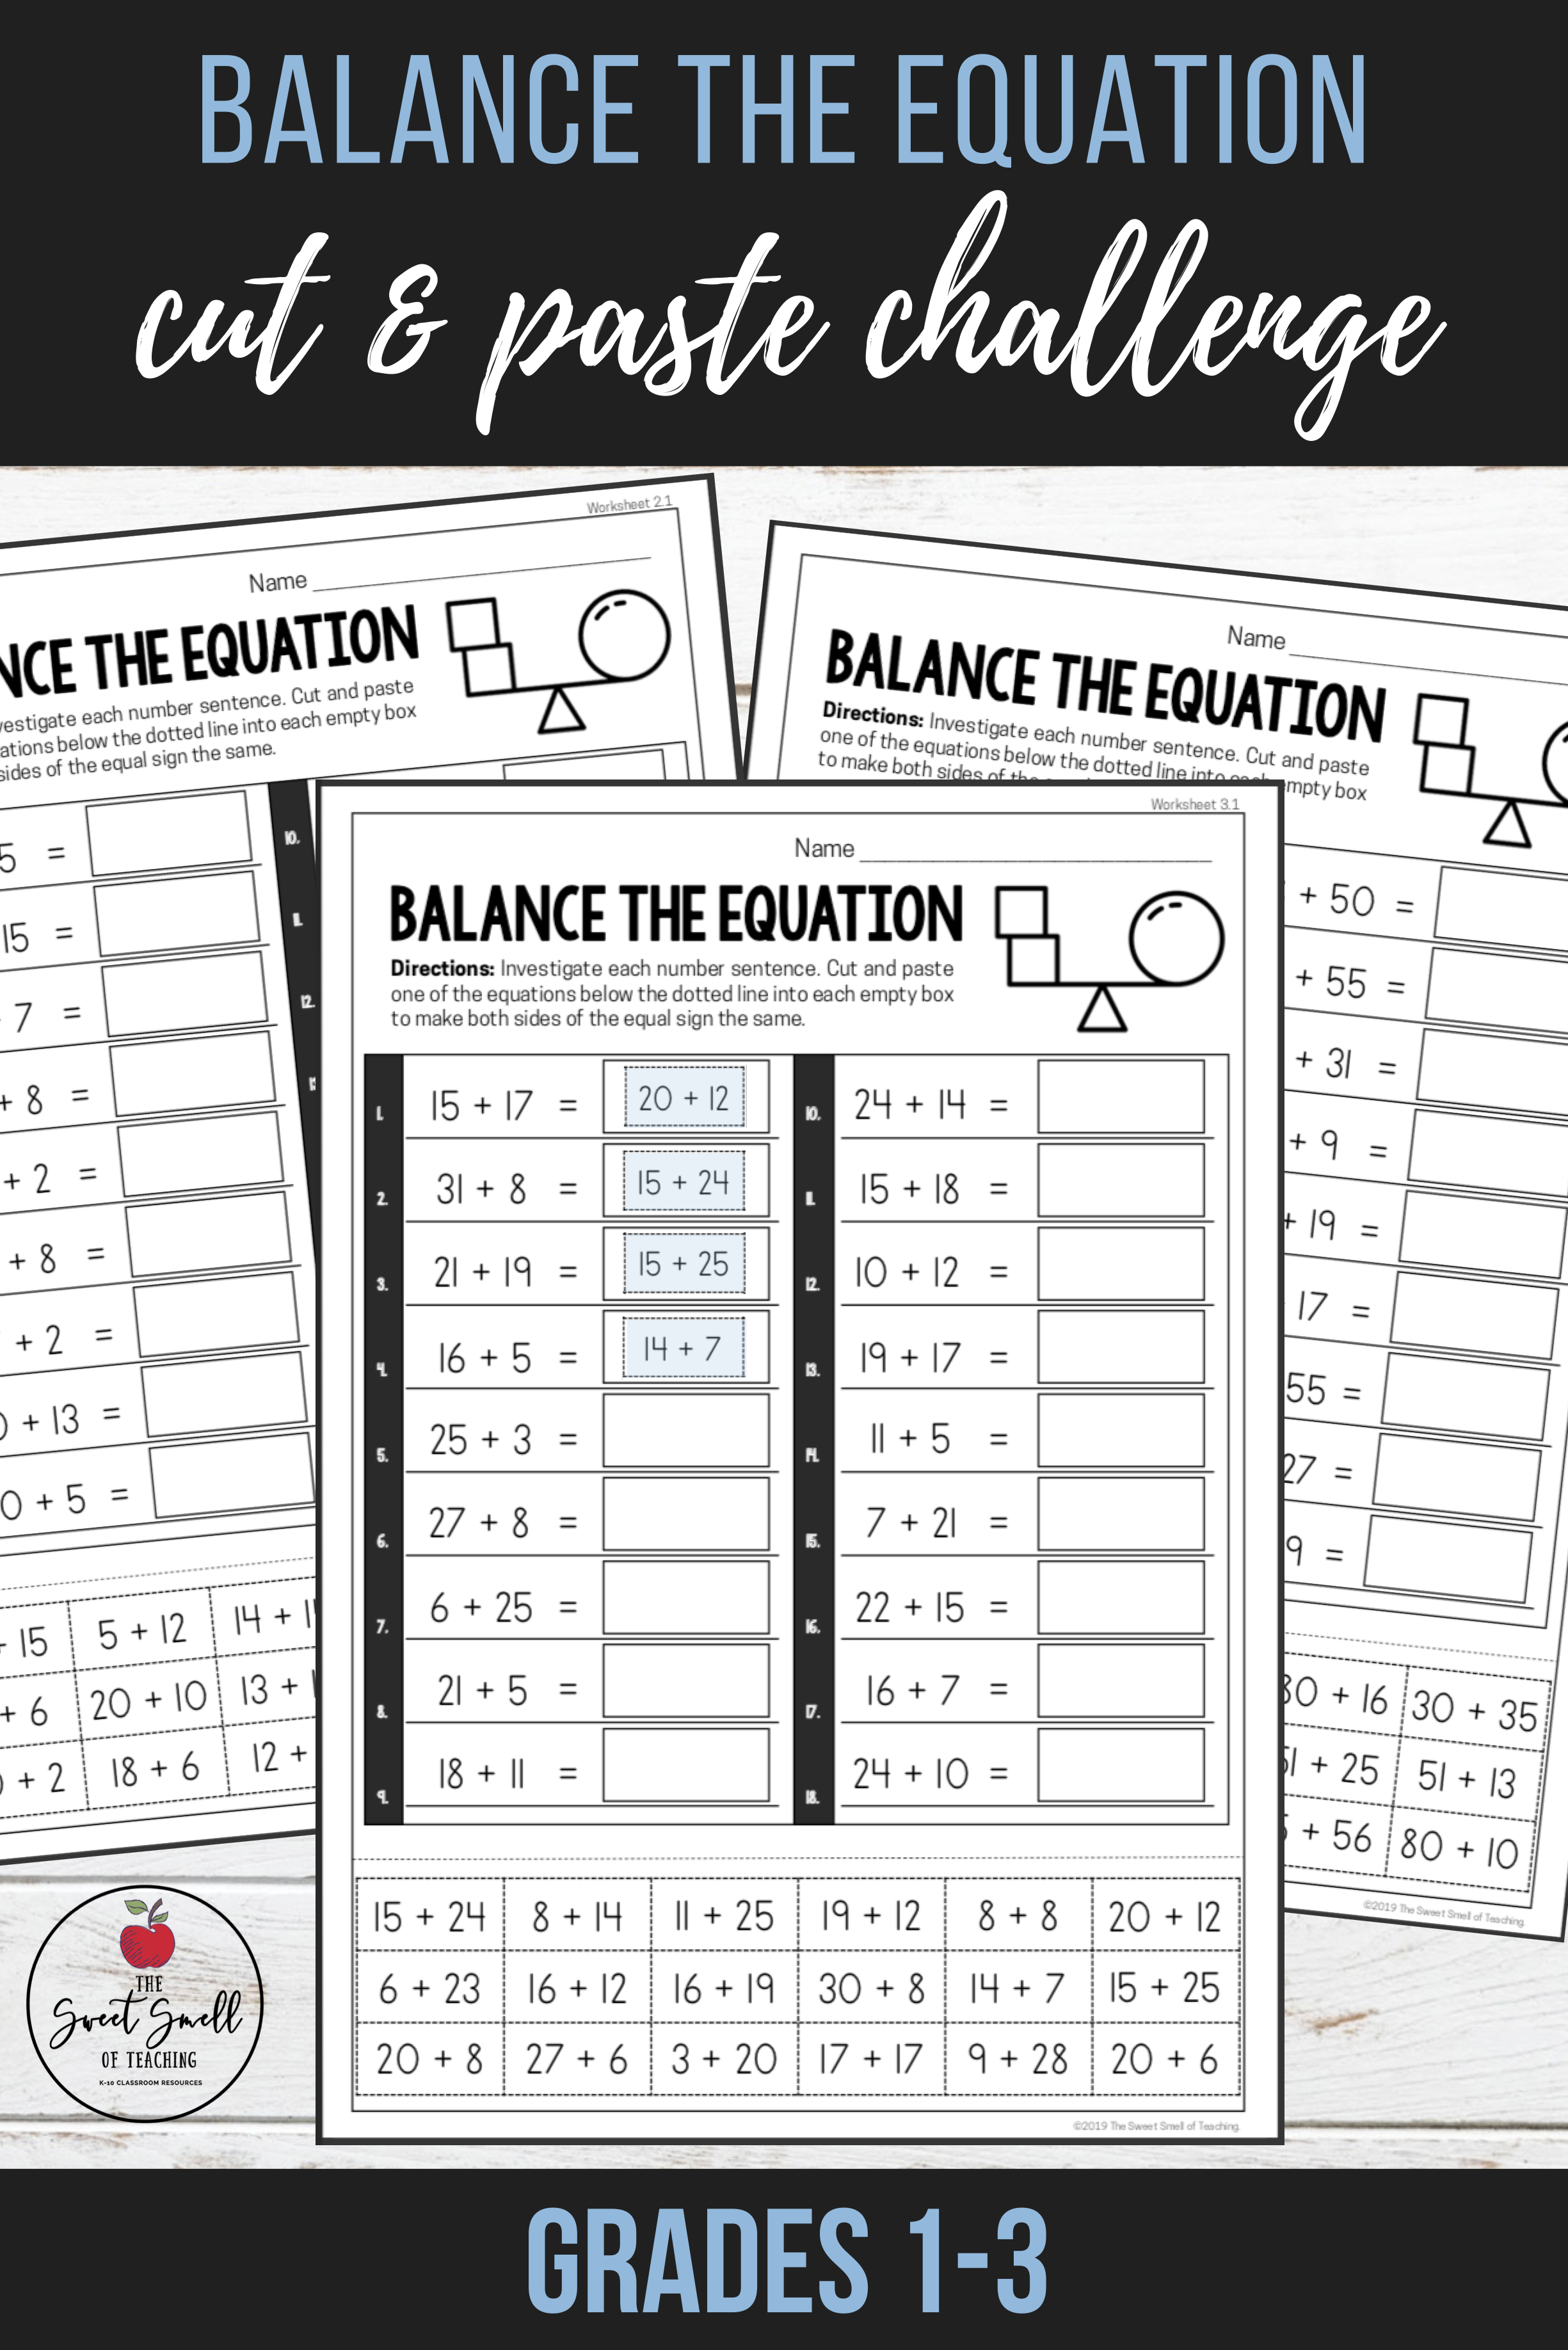 Balance The Equation Challenge Differentiated Worksheets Grades 1 3 Elementary Math Teaching Math Math Resources [ 3672 x 2450 Pixel ]